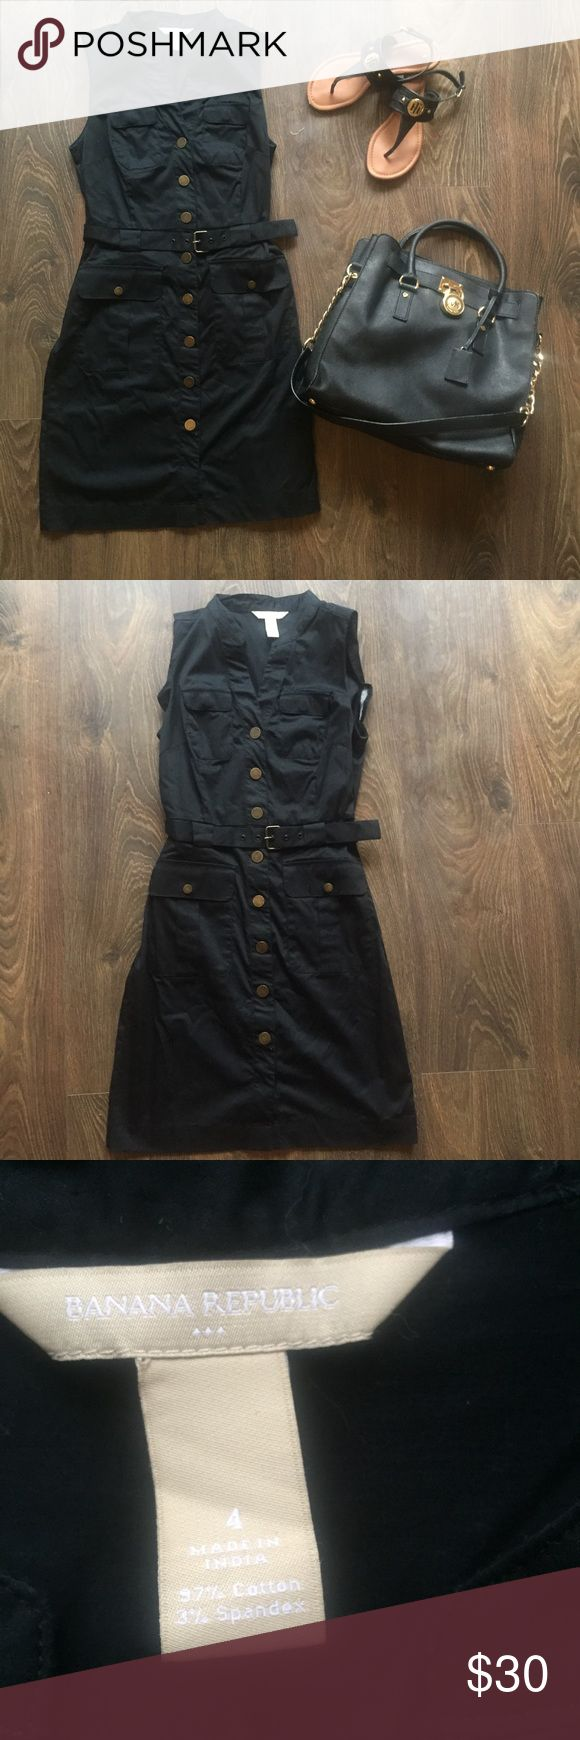 Banana Republic Dress Super chic black button down dress. Can be worn casually or can be dressed up. Dress comes with a black belt. Pairs nicely with a black sandal and a great purse. Banana Republic Dresses Midi